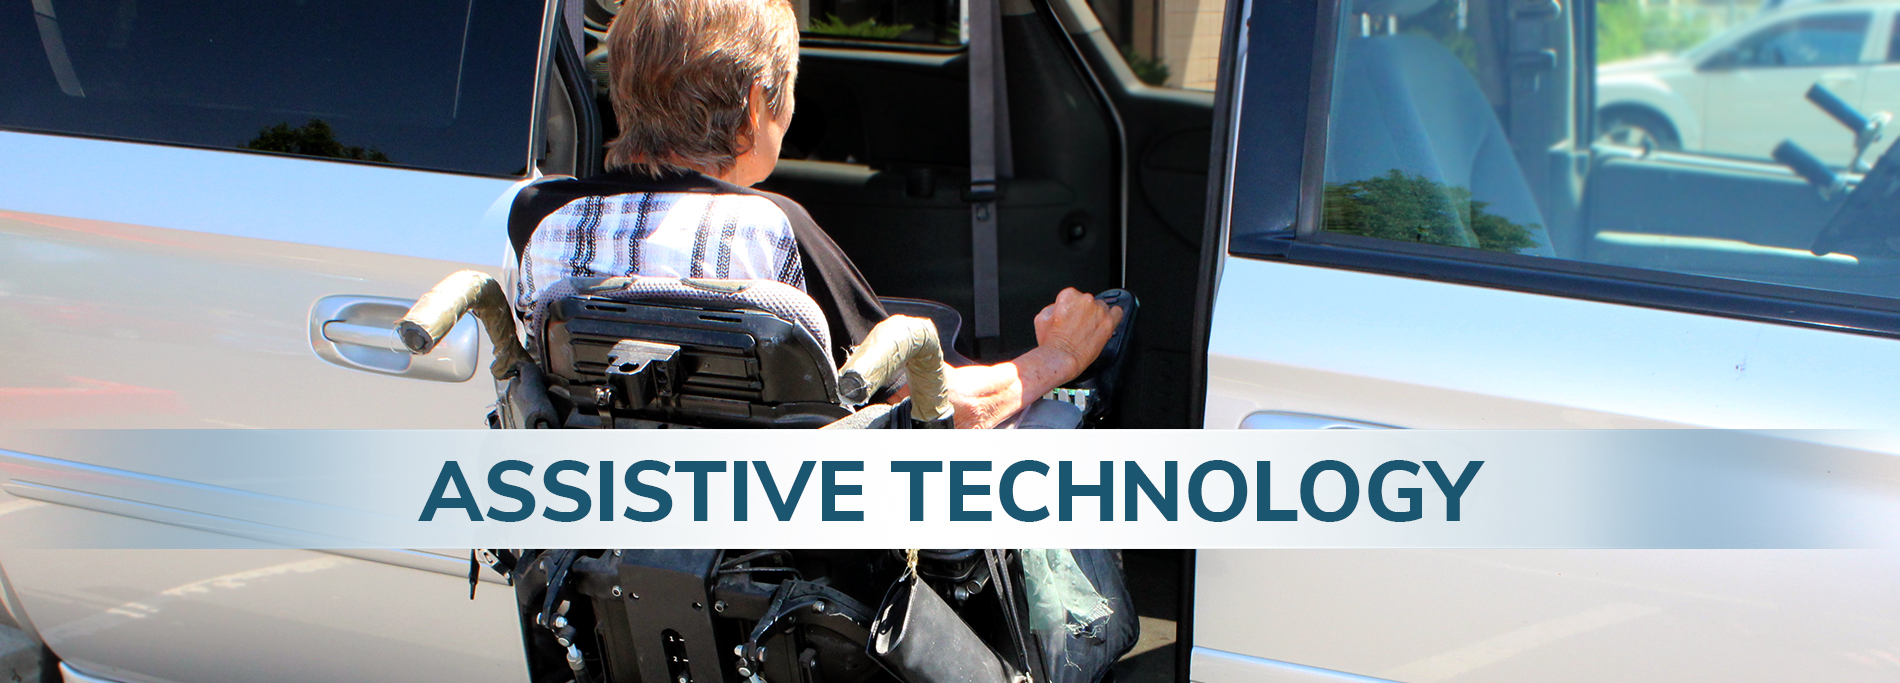 Assistive Tech - Header